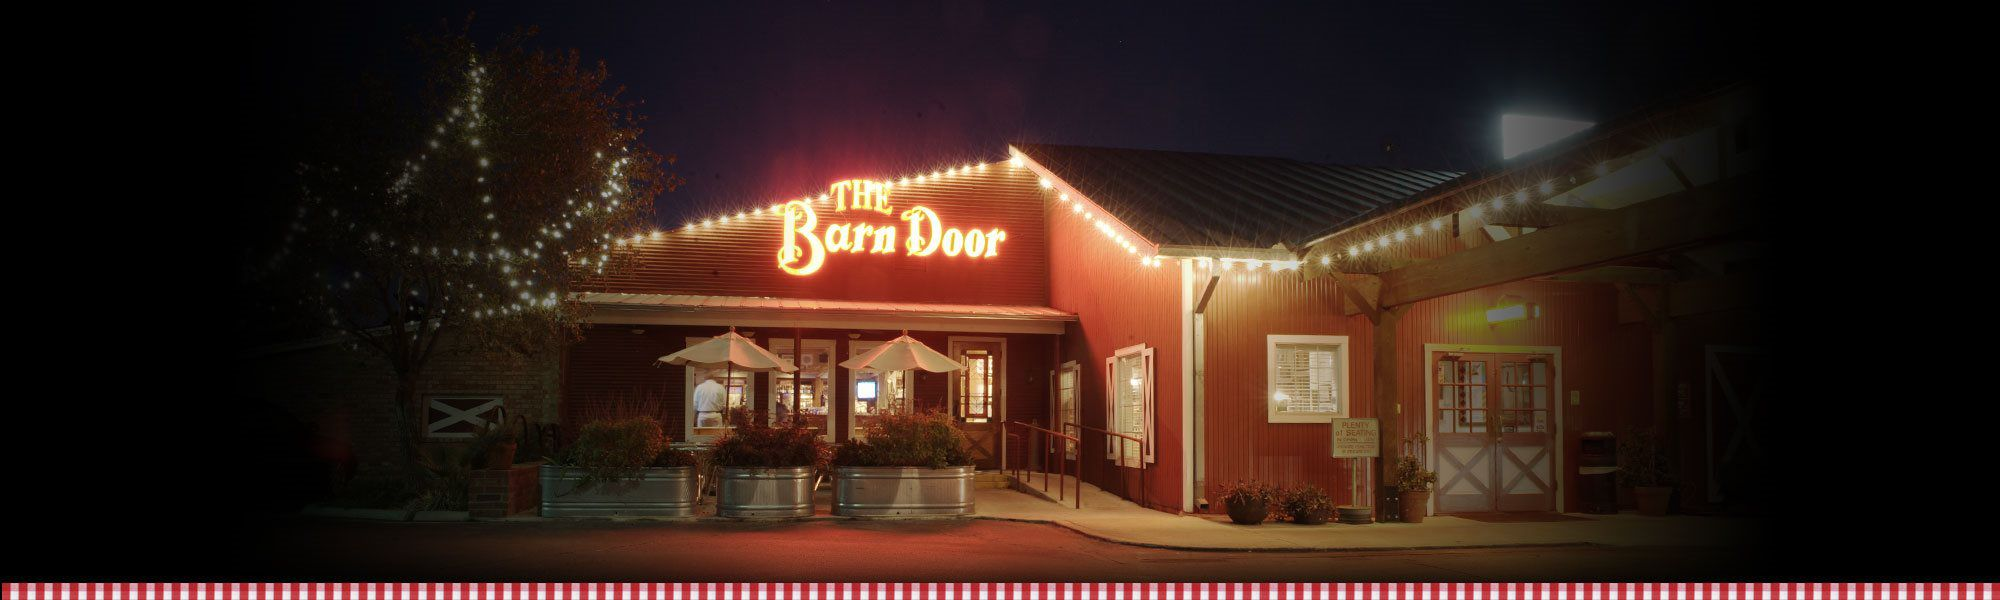 Home The Barn Door Restaurant